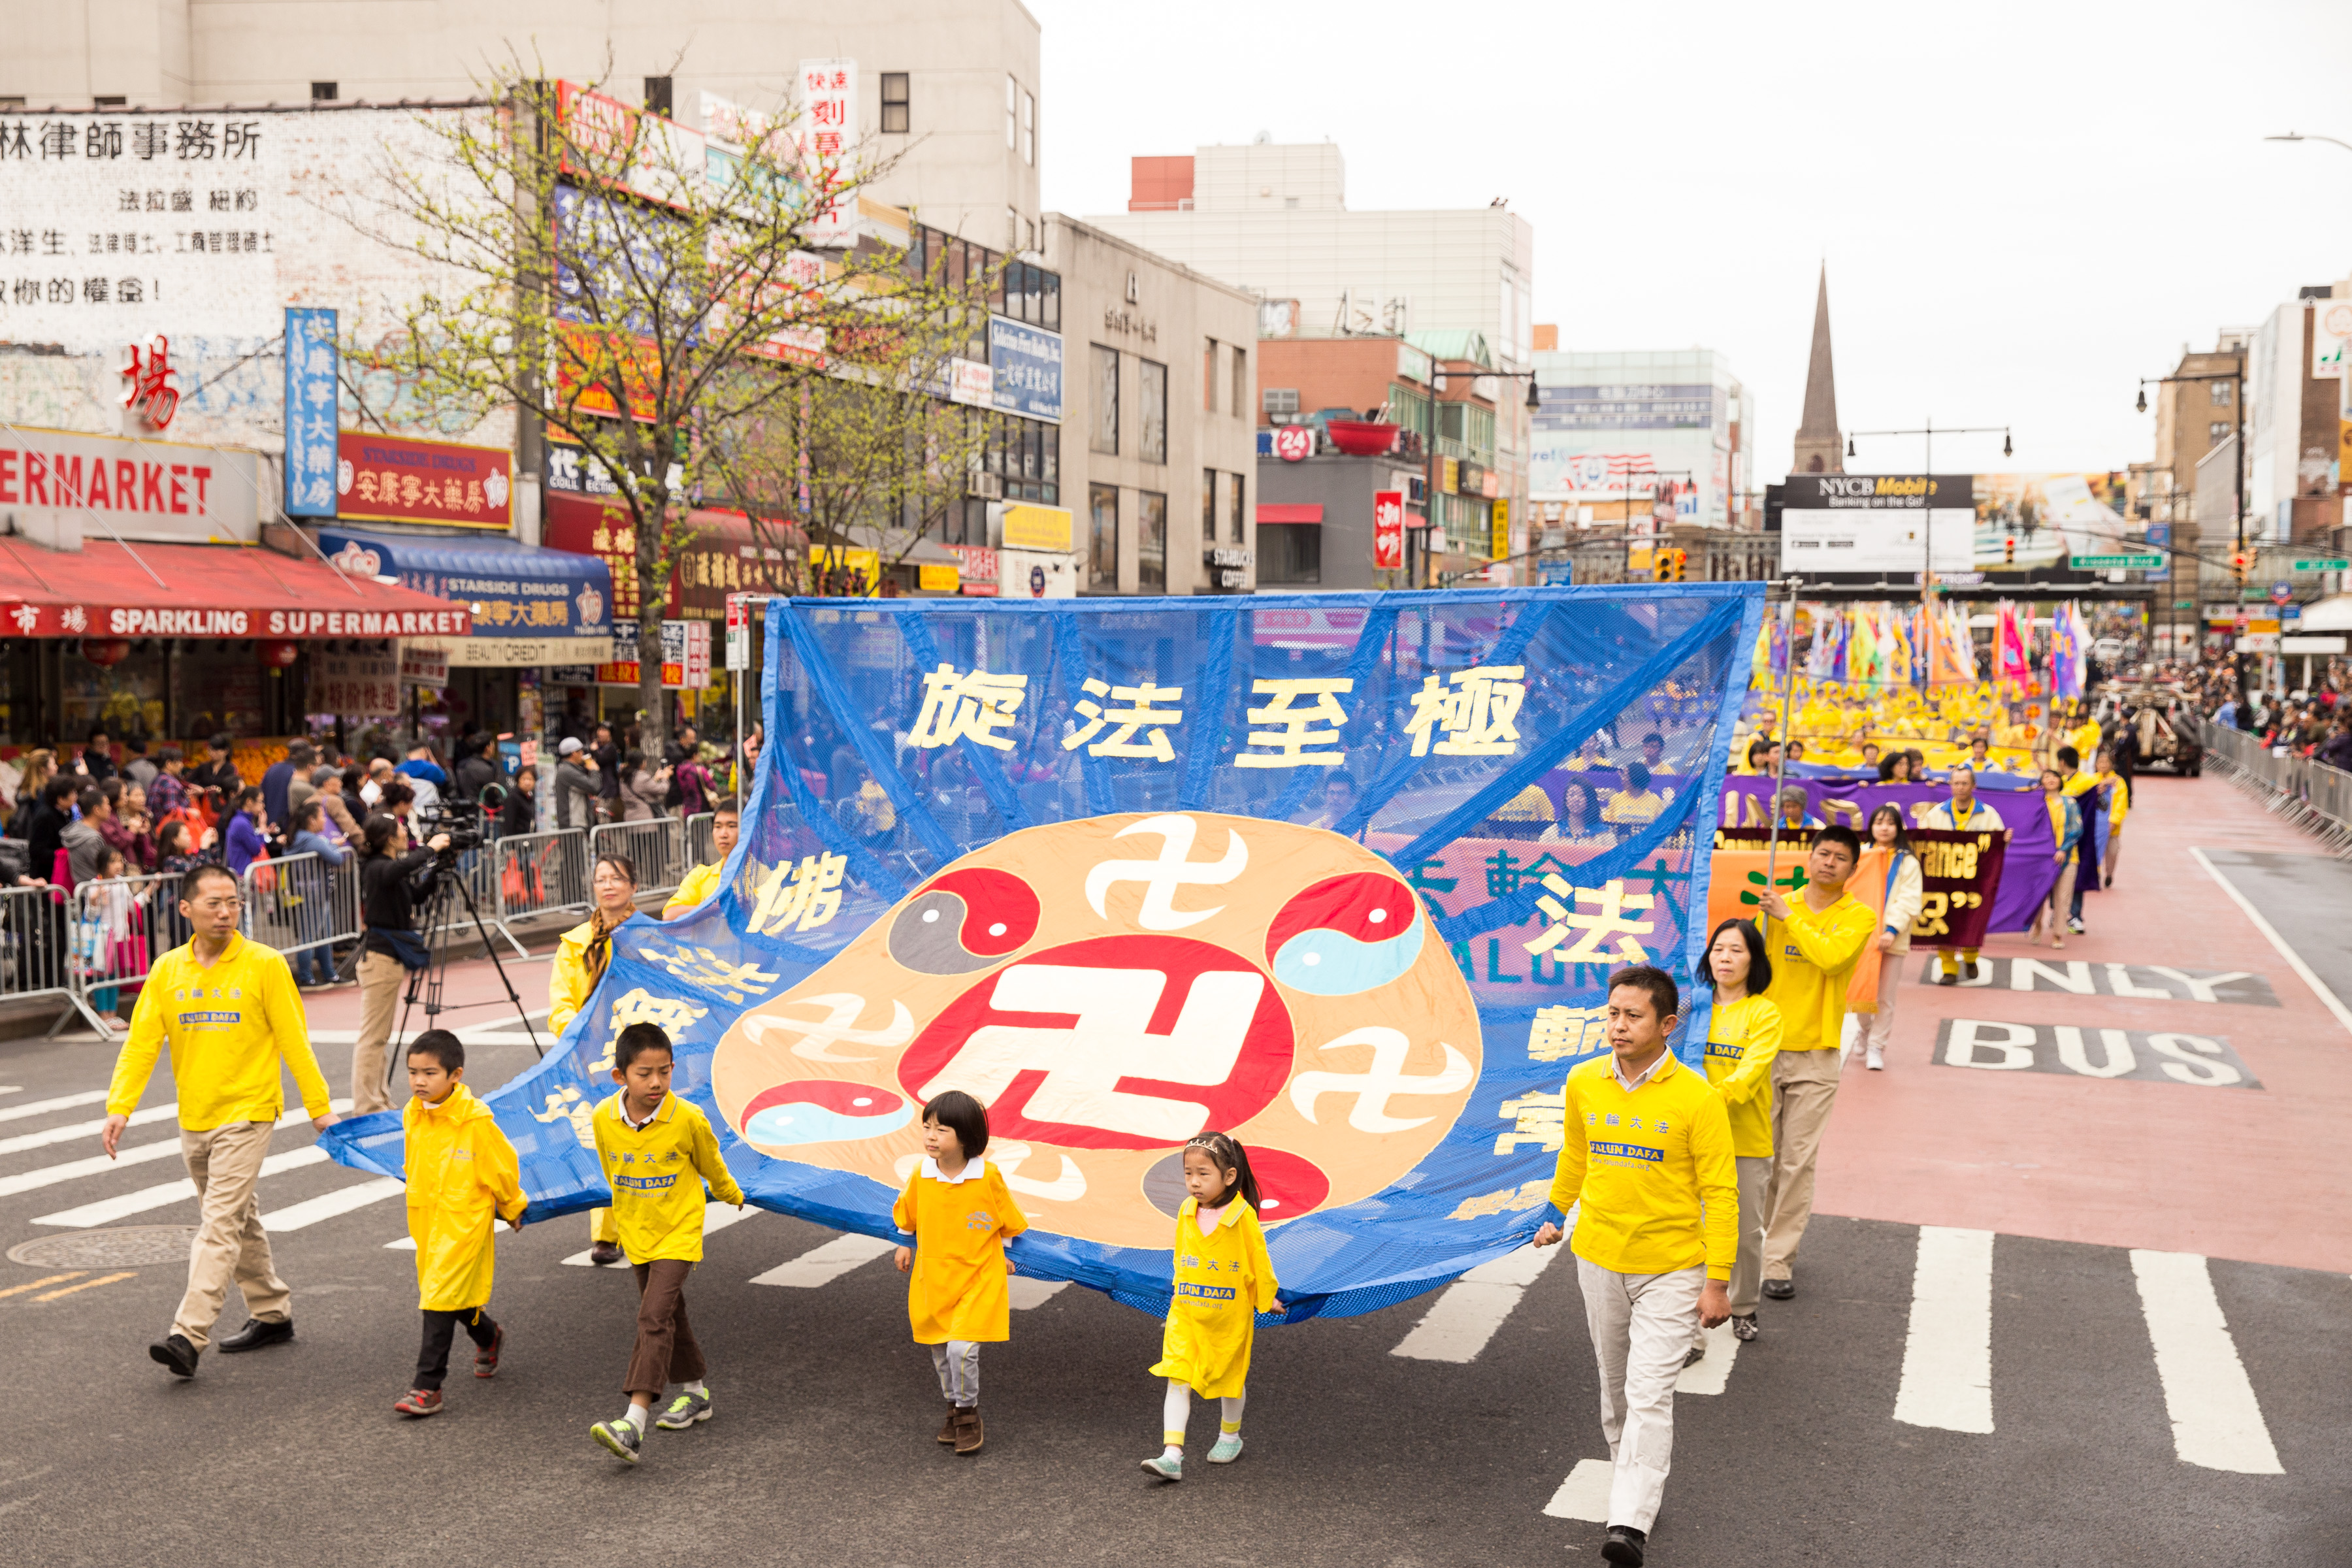 Falun Gong practitioners participating in the Flushing parade hold a large banner showing the Law Wheel symbol of Falun Gong. (Larry Dye/Epoch Times)